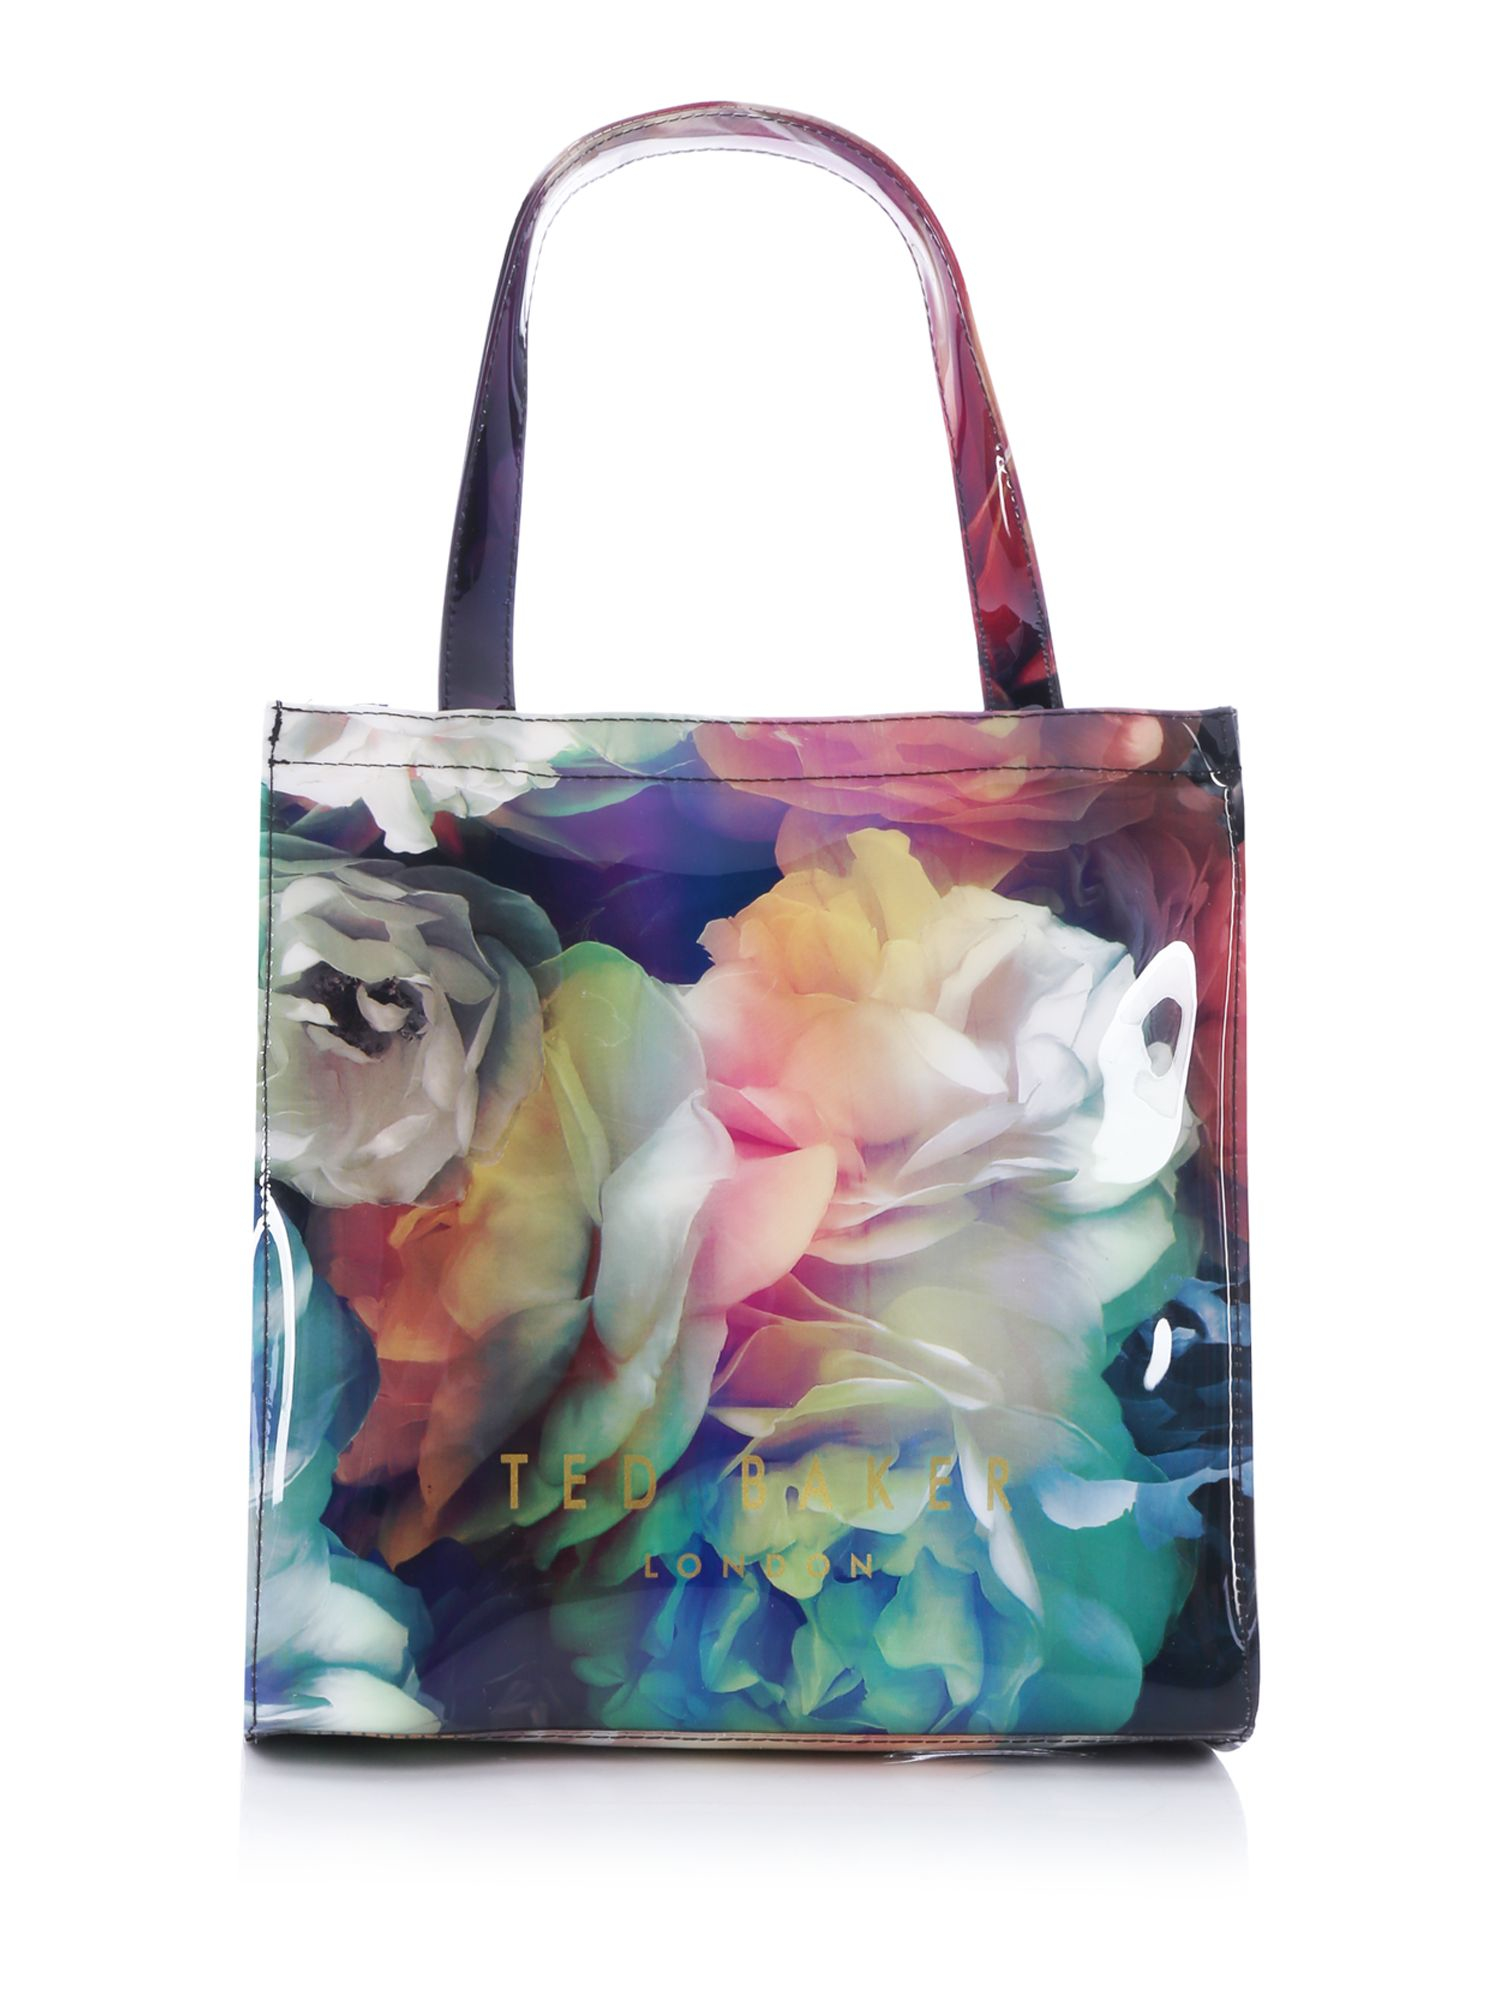 Ted Baker Bowcon Black Floral Small Tote Bag With Umbrella